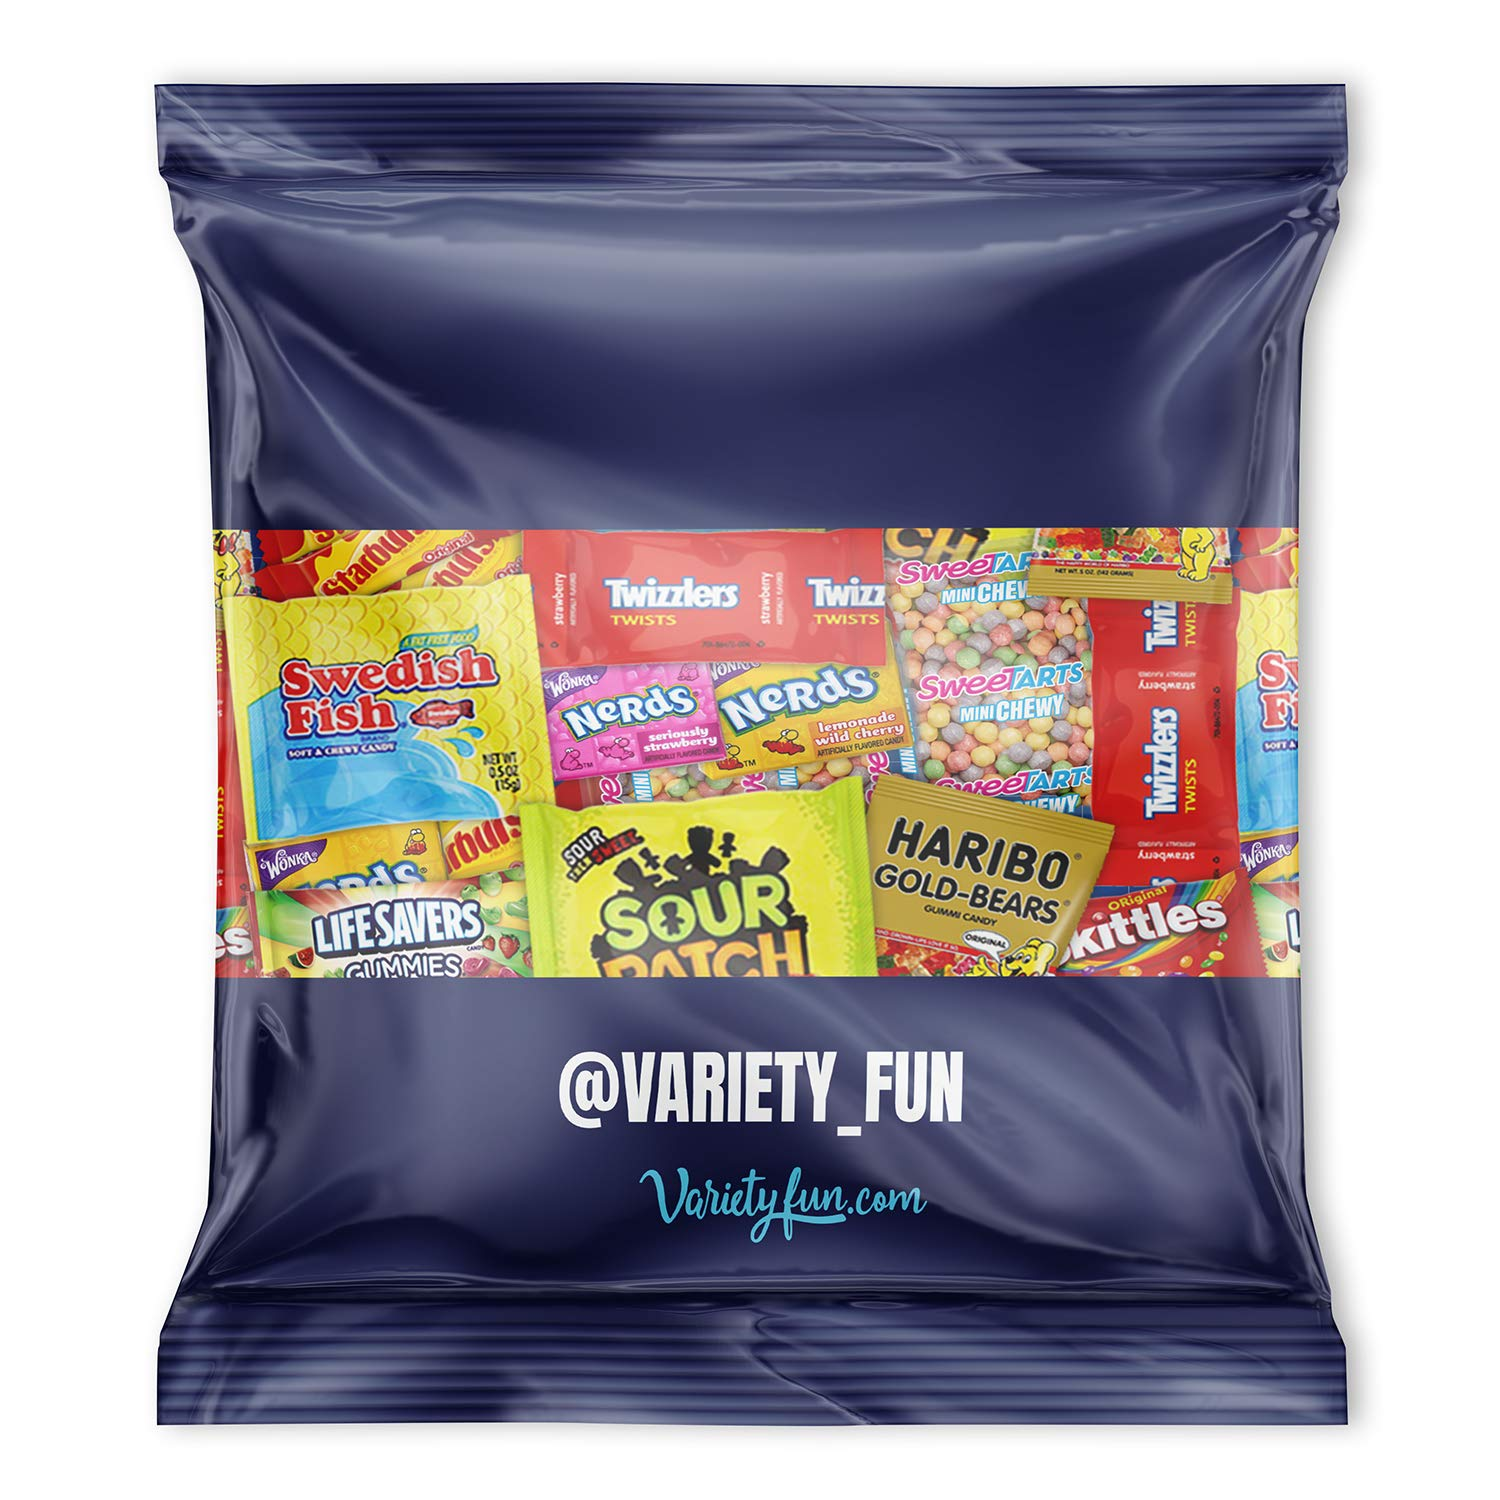 Candy Party Mix Bulk Bag of Skittles Swedish Fish Nerds Haribo Gummy Sour Patch Twizzlers Starburst Mike and Ike and more! by Variety Fun Net wt (48 oz) by Custom Varietea (Image #5)